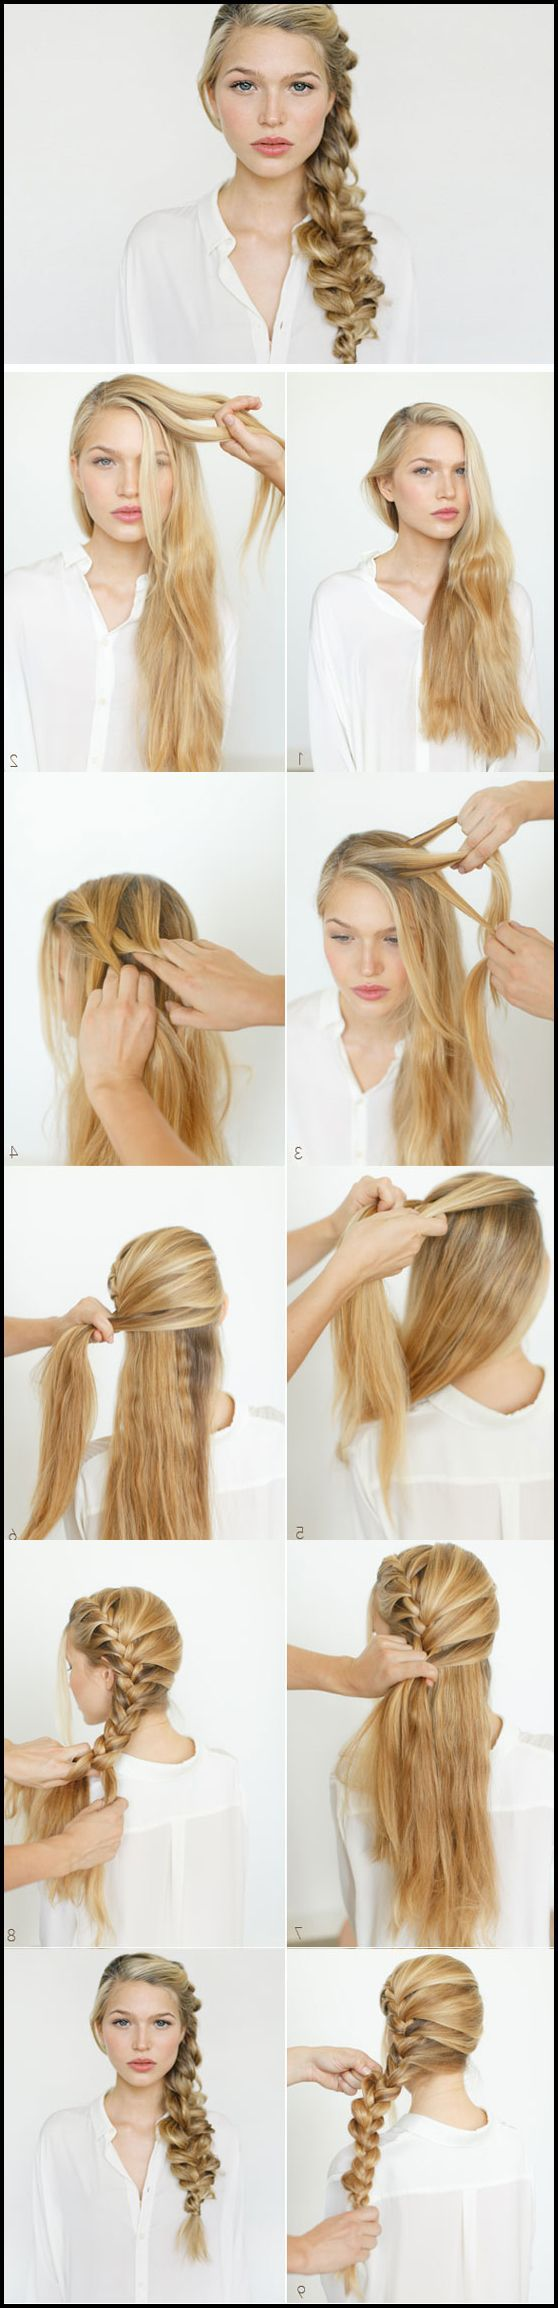 4873 best Easy hairstyles images on Pinterest | Hairstyle ideas ...